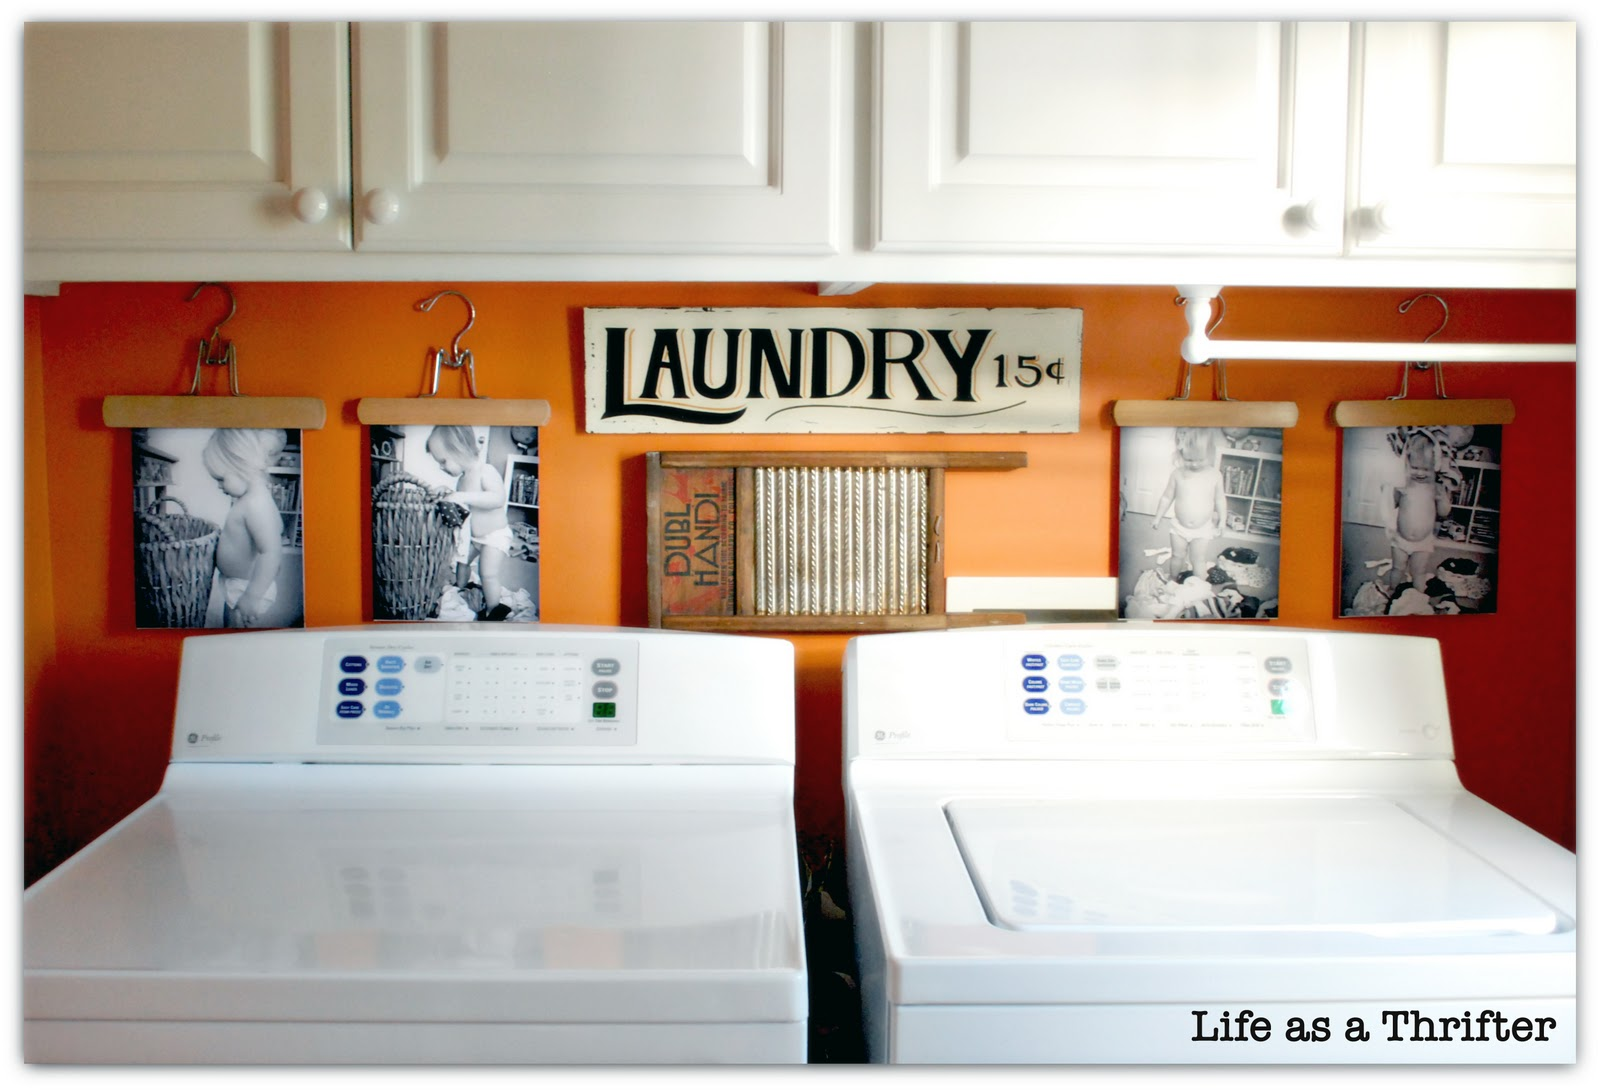 Life as a Thrifter: DIY Laundry Room Display